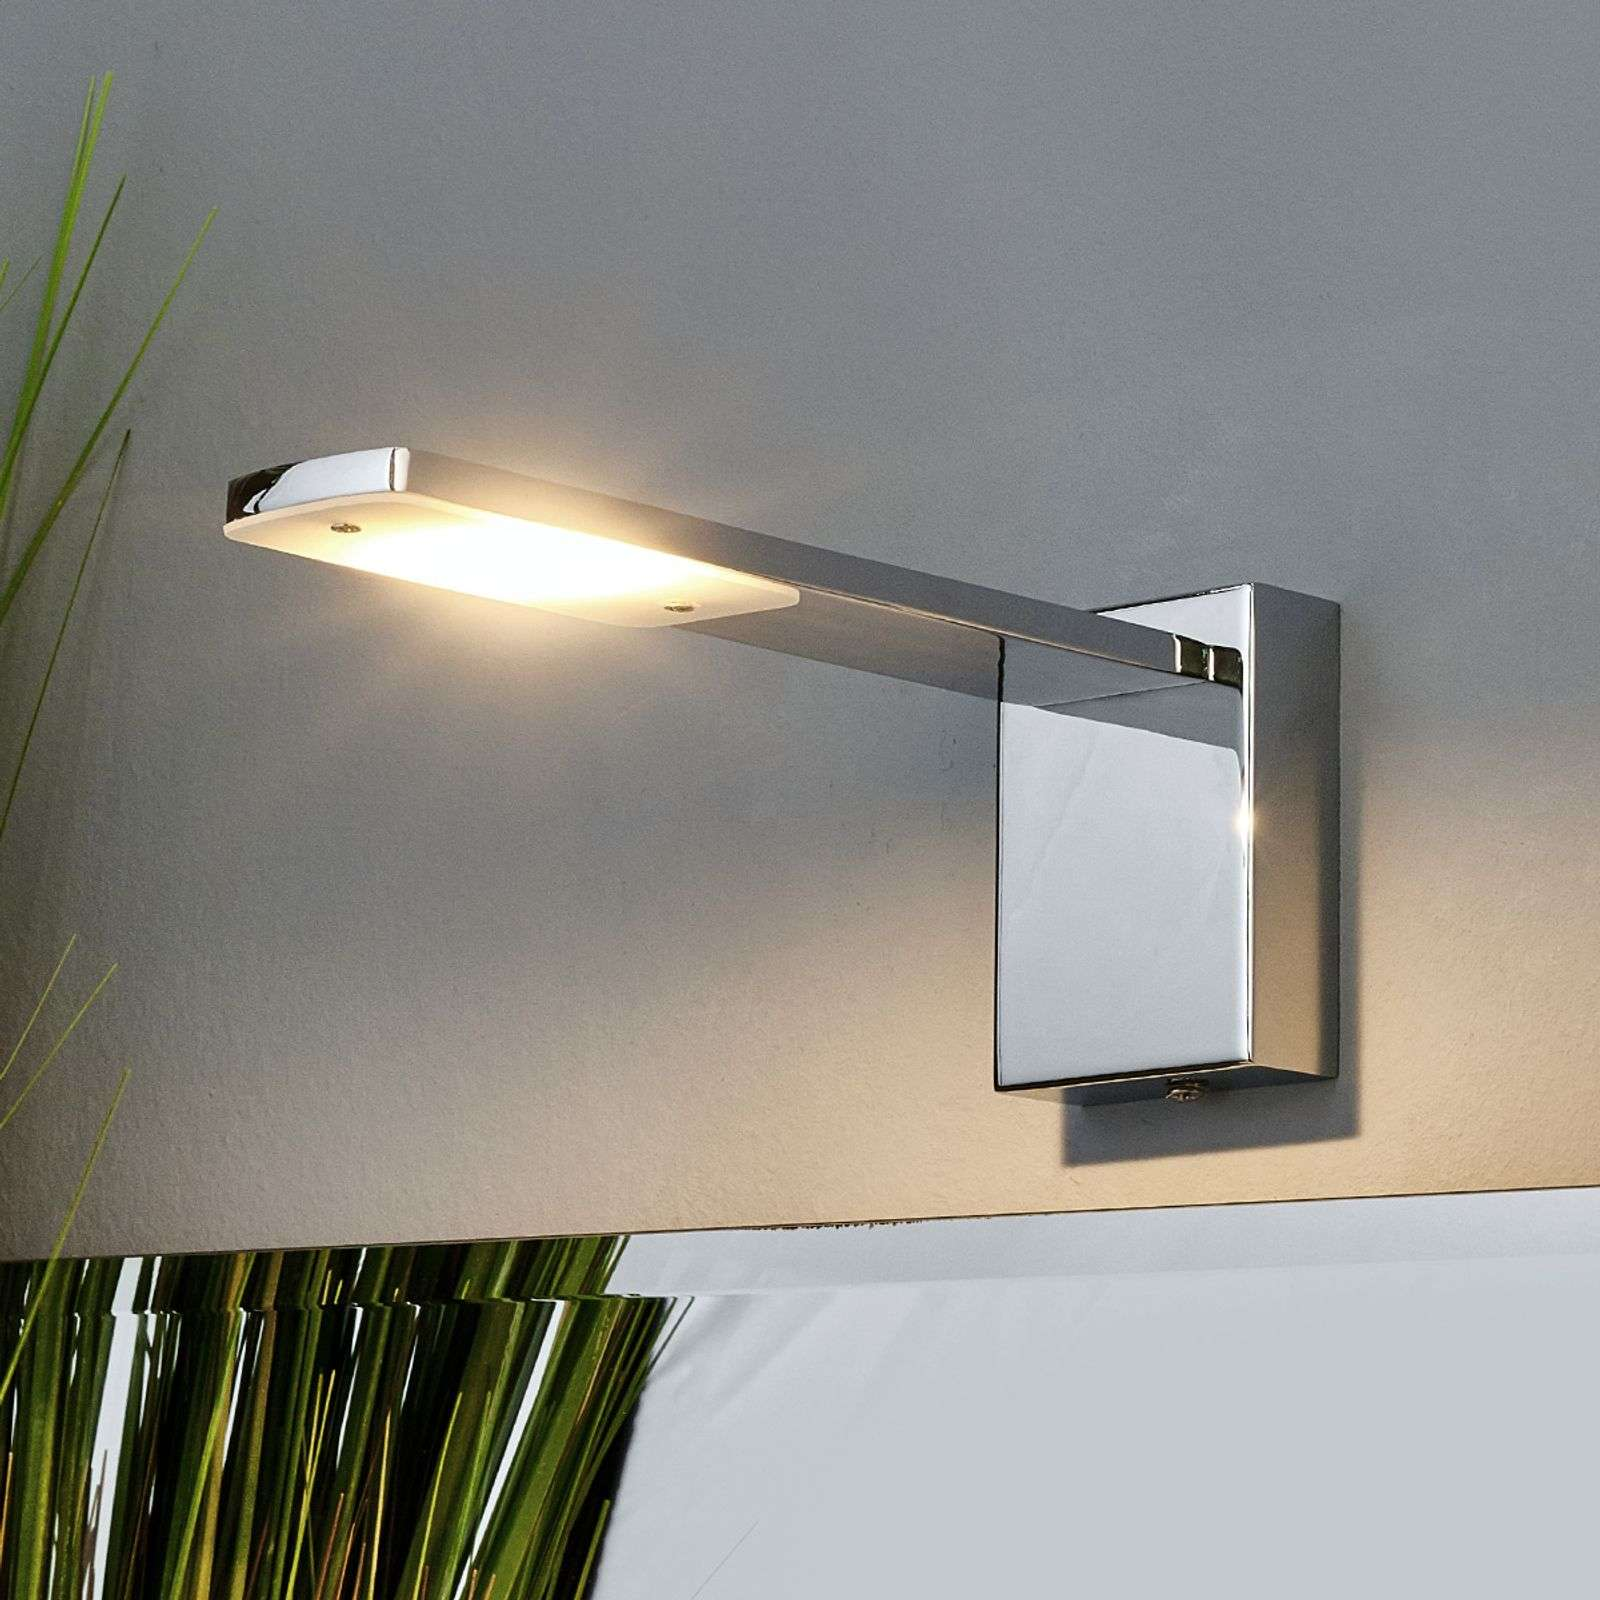 Applique pour miroir LED Tizian exclusive